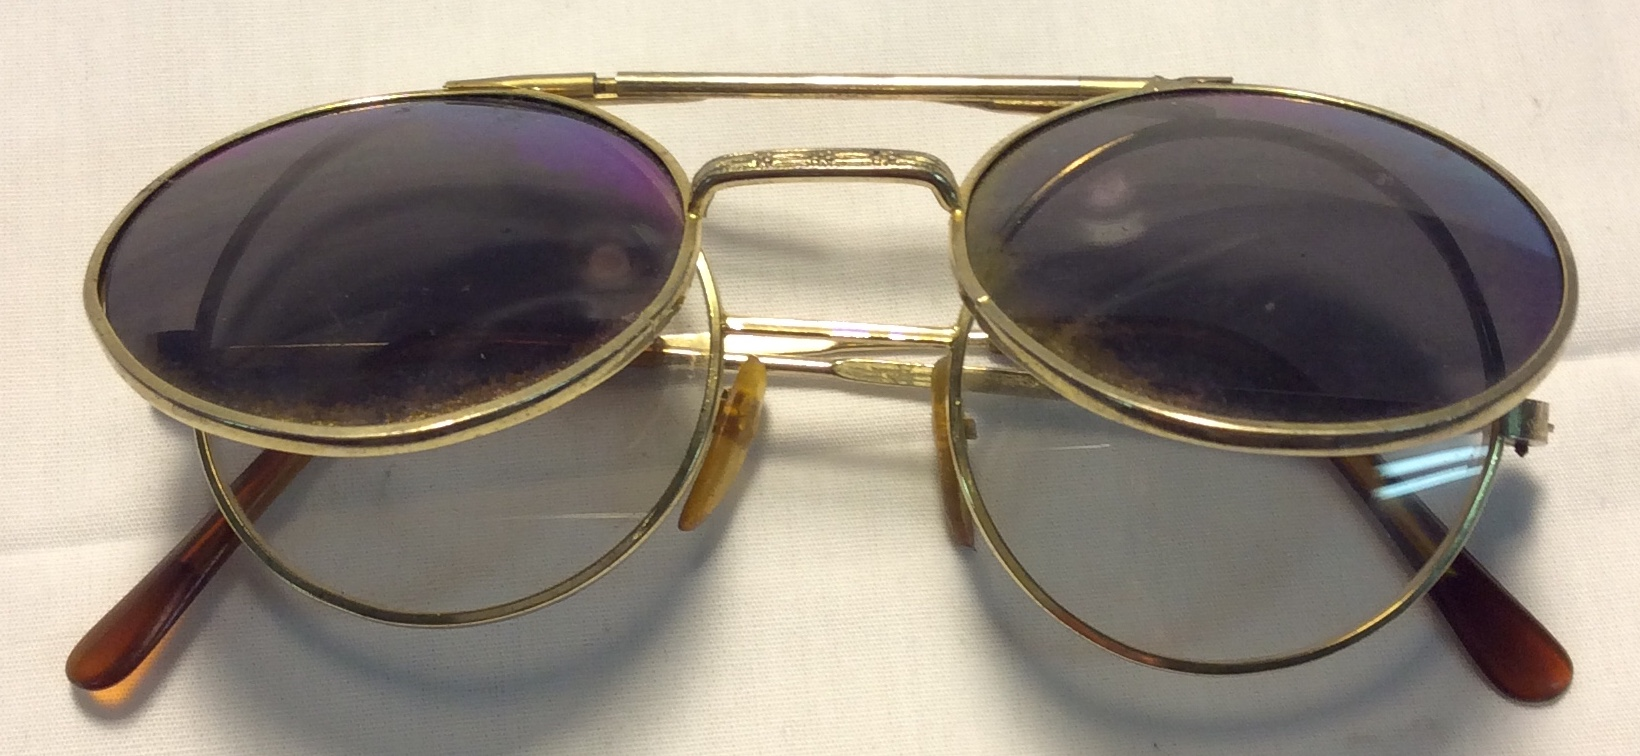 Gold frames, light brown ends, green